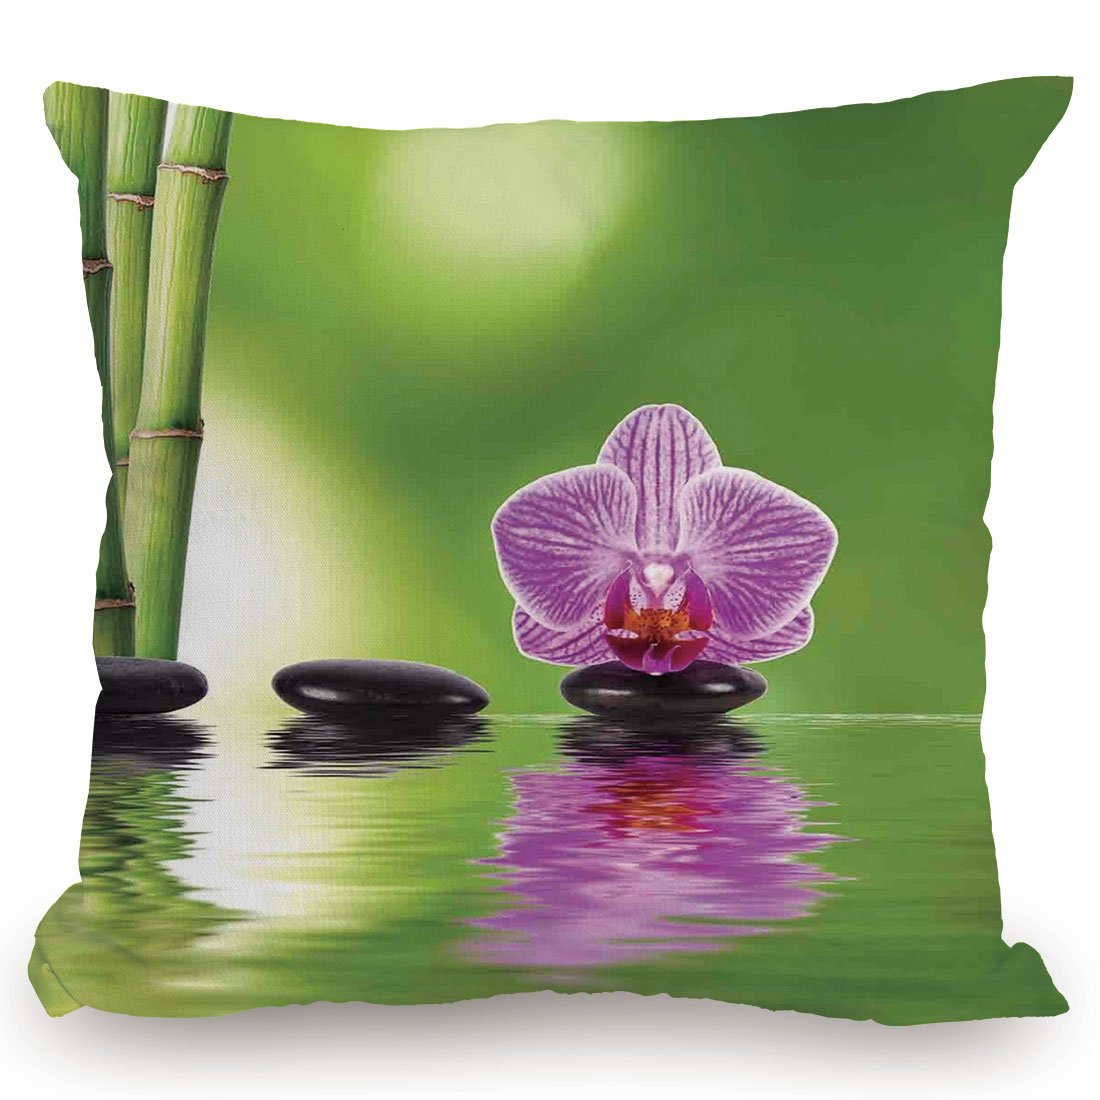 KissCase Throw Pillow Cushion Cover,Spa Decor,Spa Floral Decorating Summertime Holidays Exotic Positiveness Lilac Bouquet,Decorative Square Accent Pillow Case